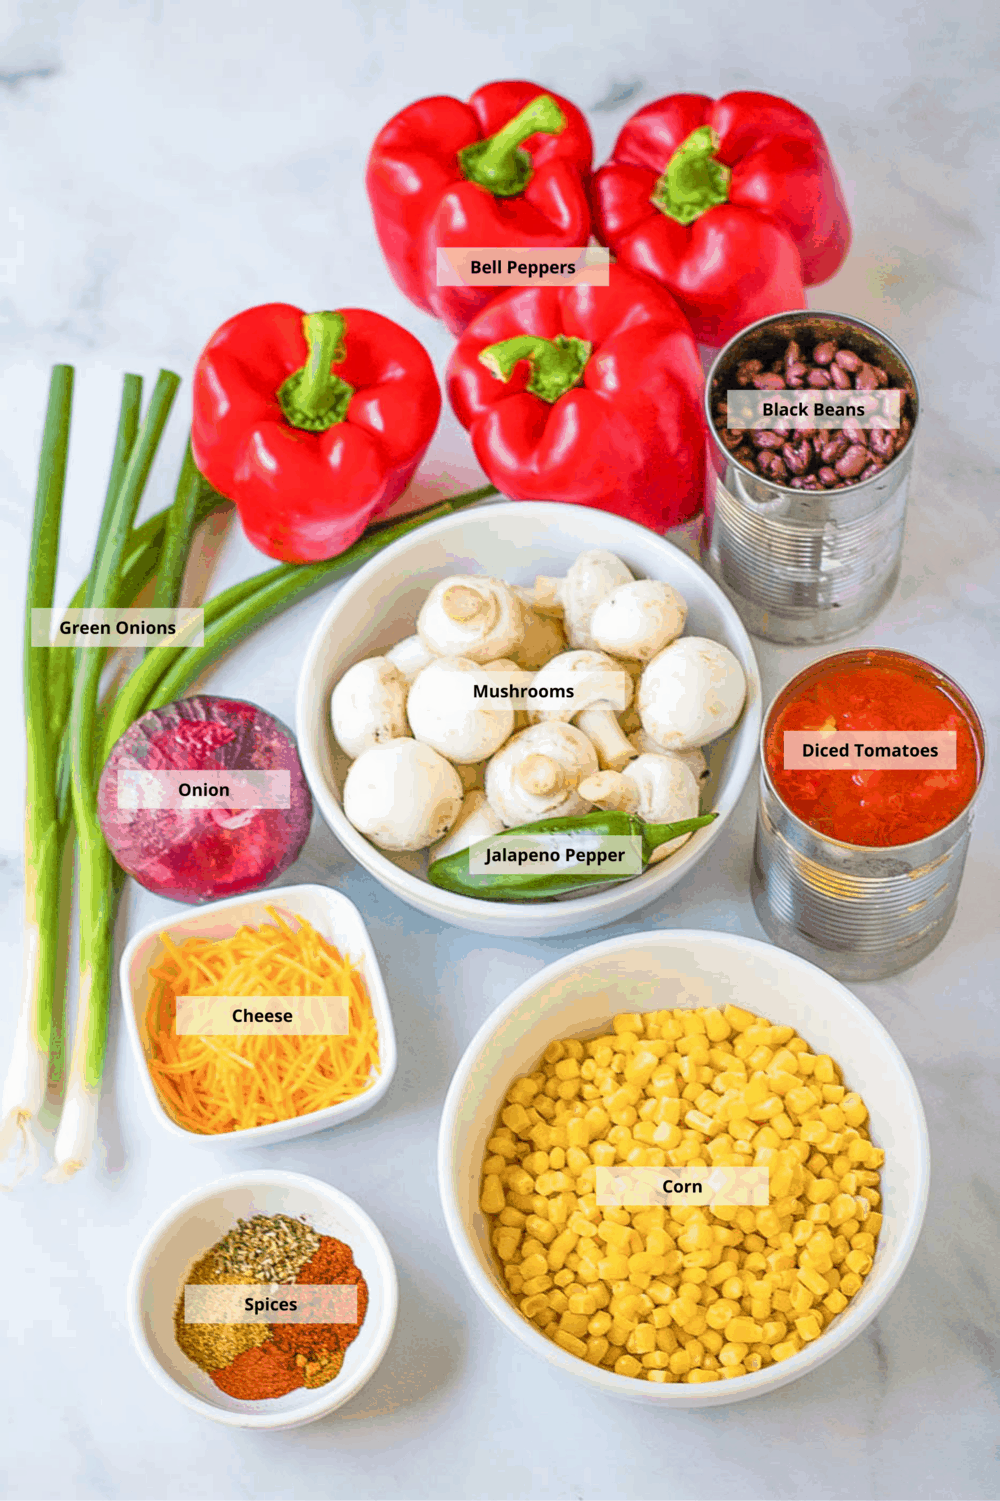 ingredients for chili stuffed peppers with black beans and mushrooms